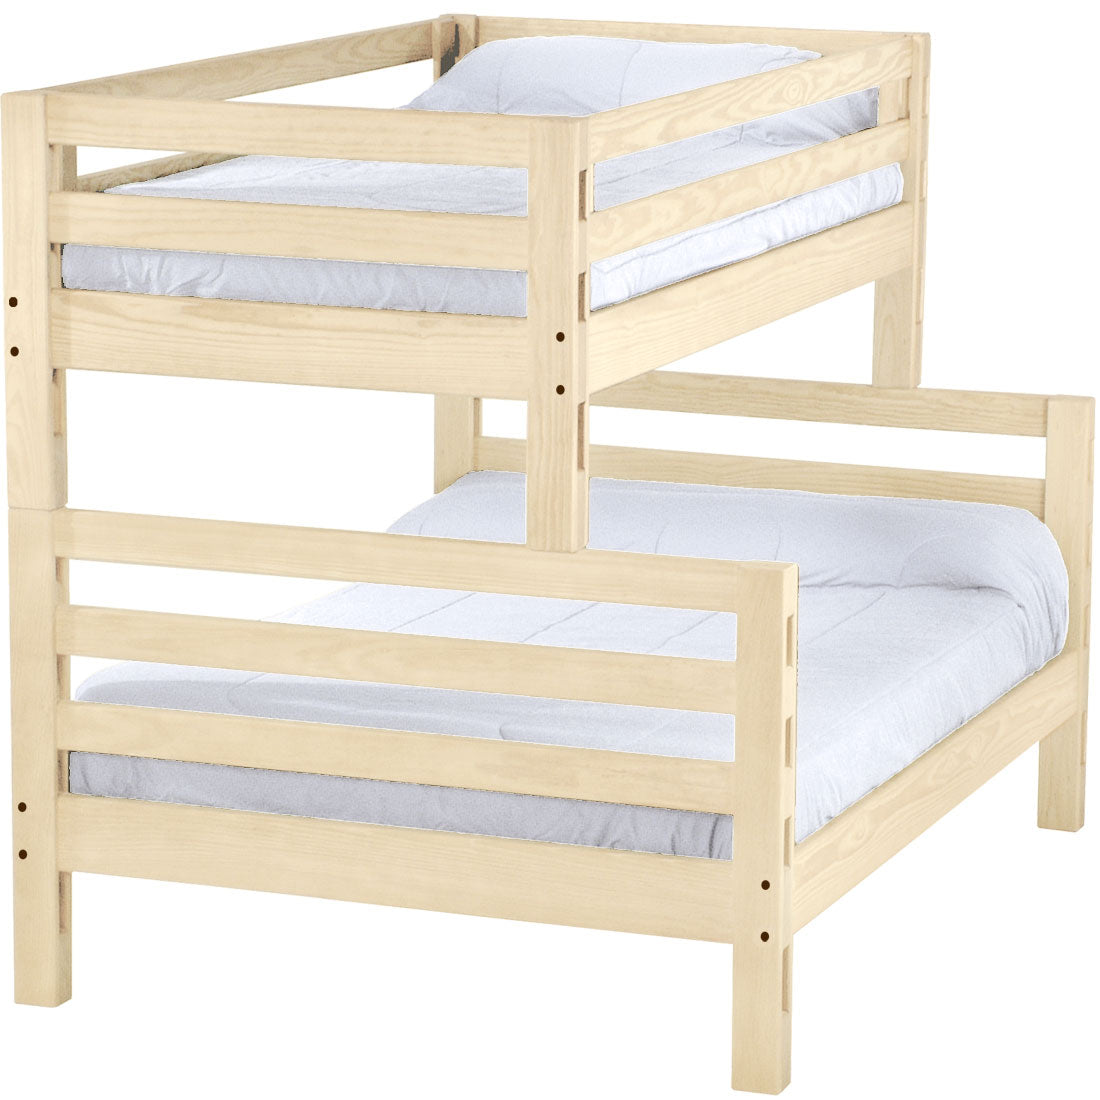 Ladder End Bunk Bed Twin Over Full Crate Designs Furniture